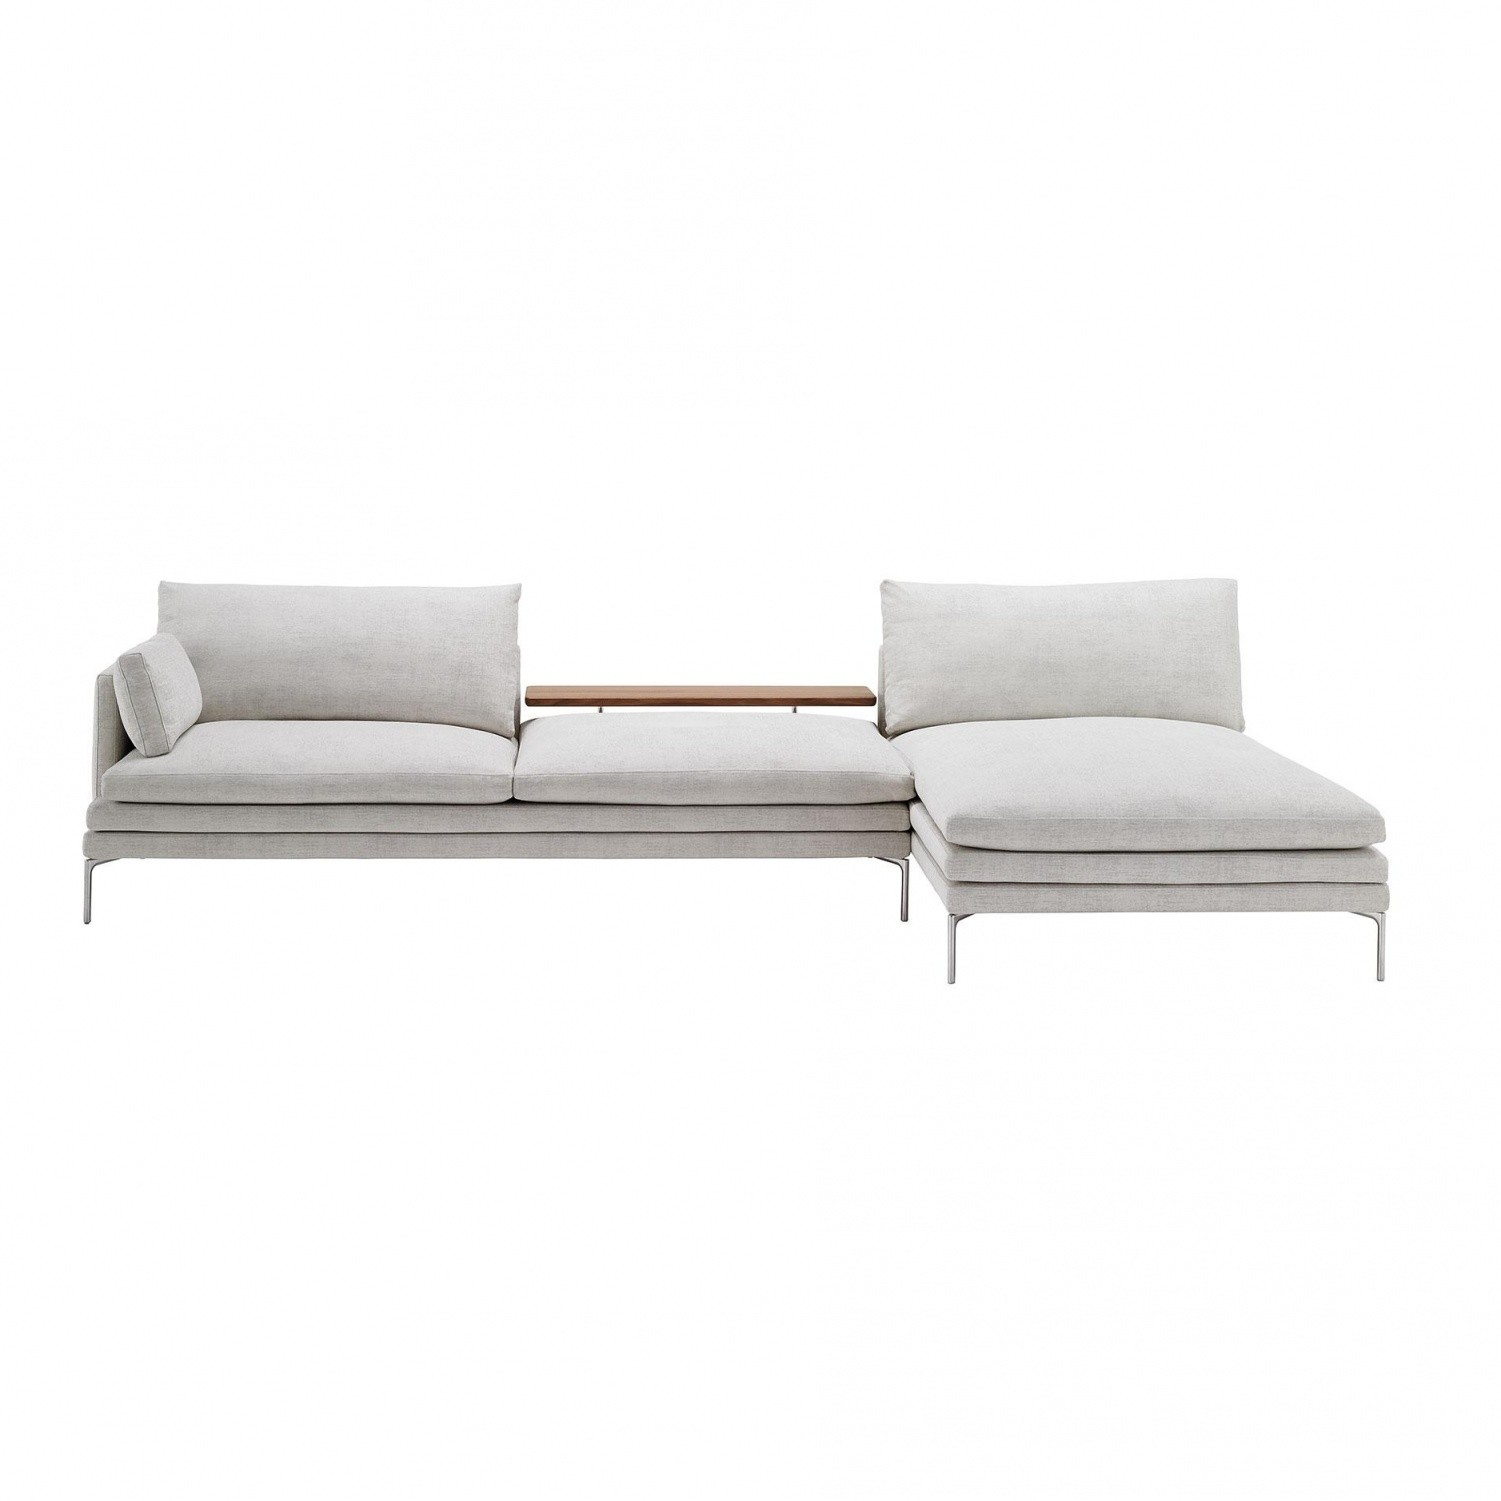 - Zanotta William 1330 Sofa With Chaise Longue AmbienteDirect